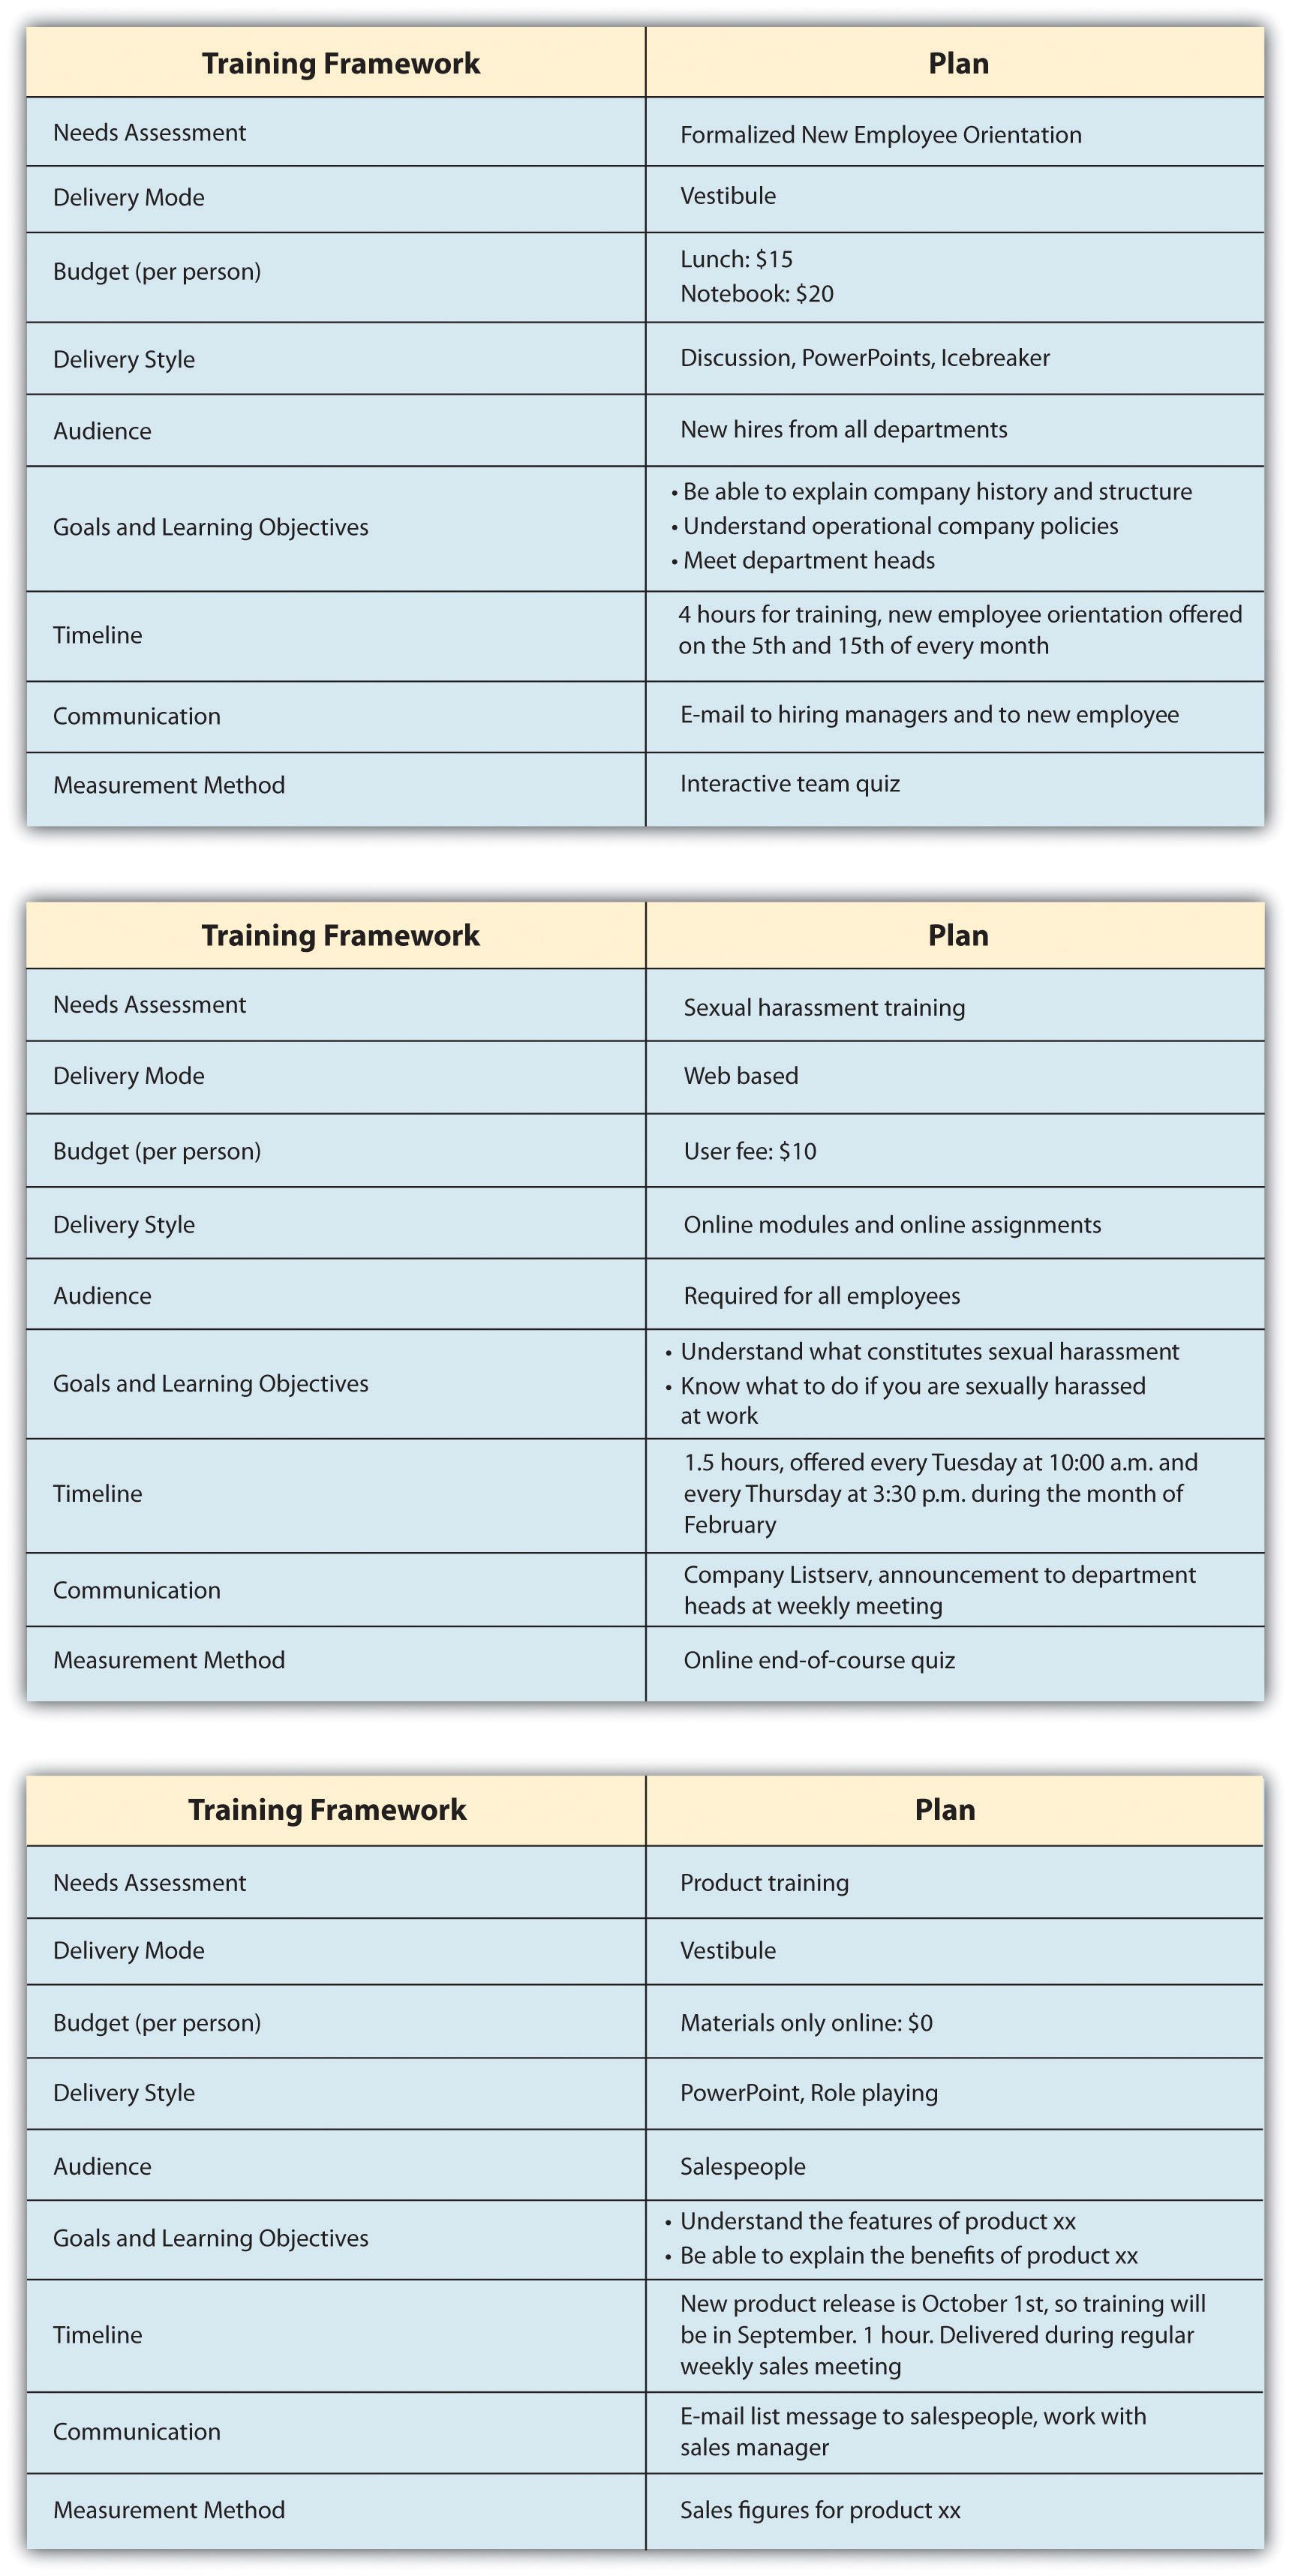 New Employee Training Plan Template Inquire before your hire ...